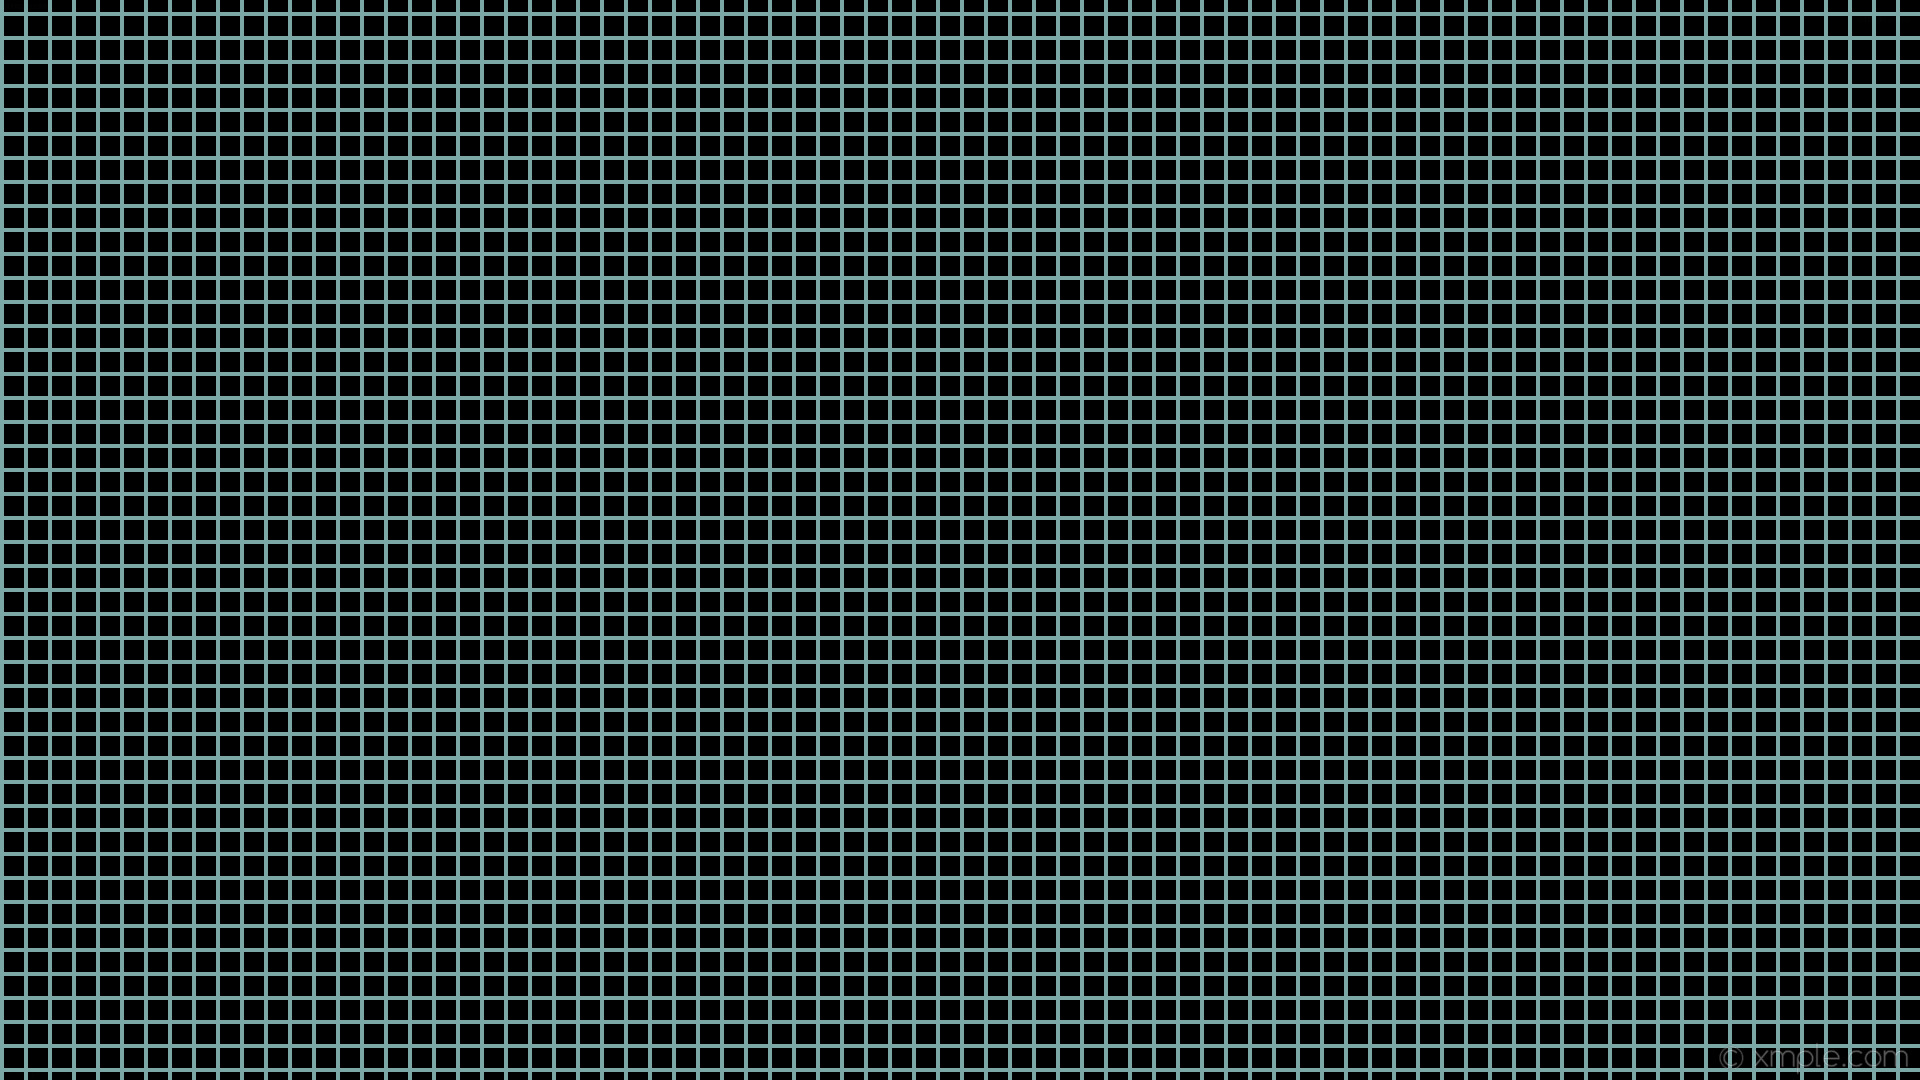 wallpaper graph paper blue black grid pale turquoise #000000 #afeeee 0° 4px  24px